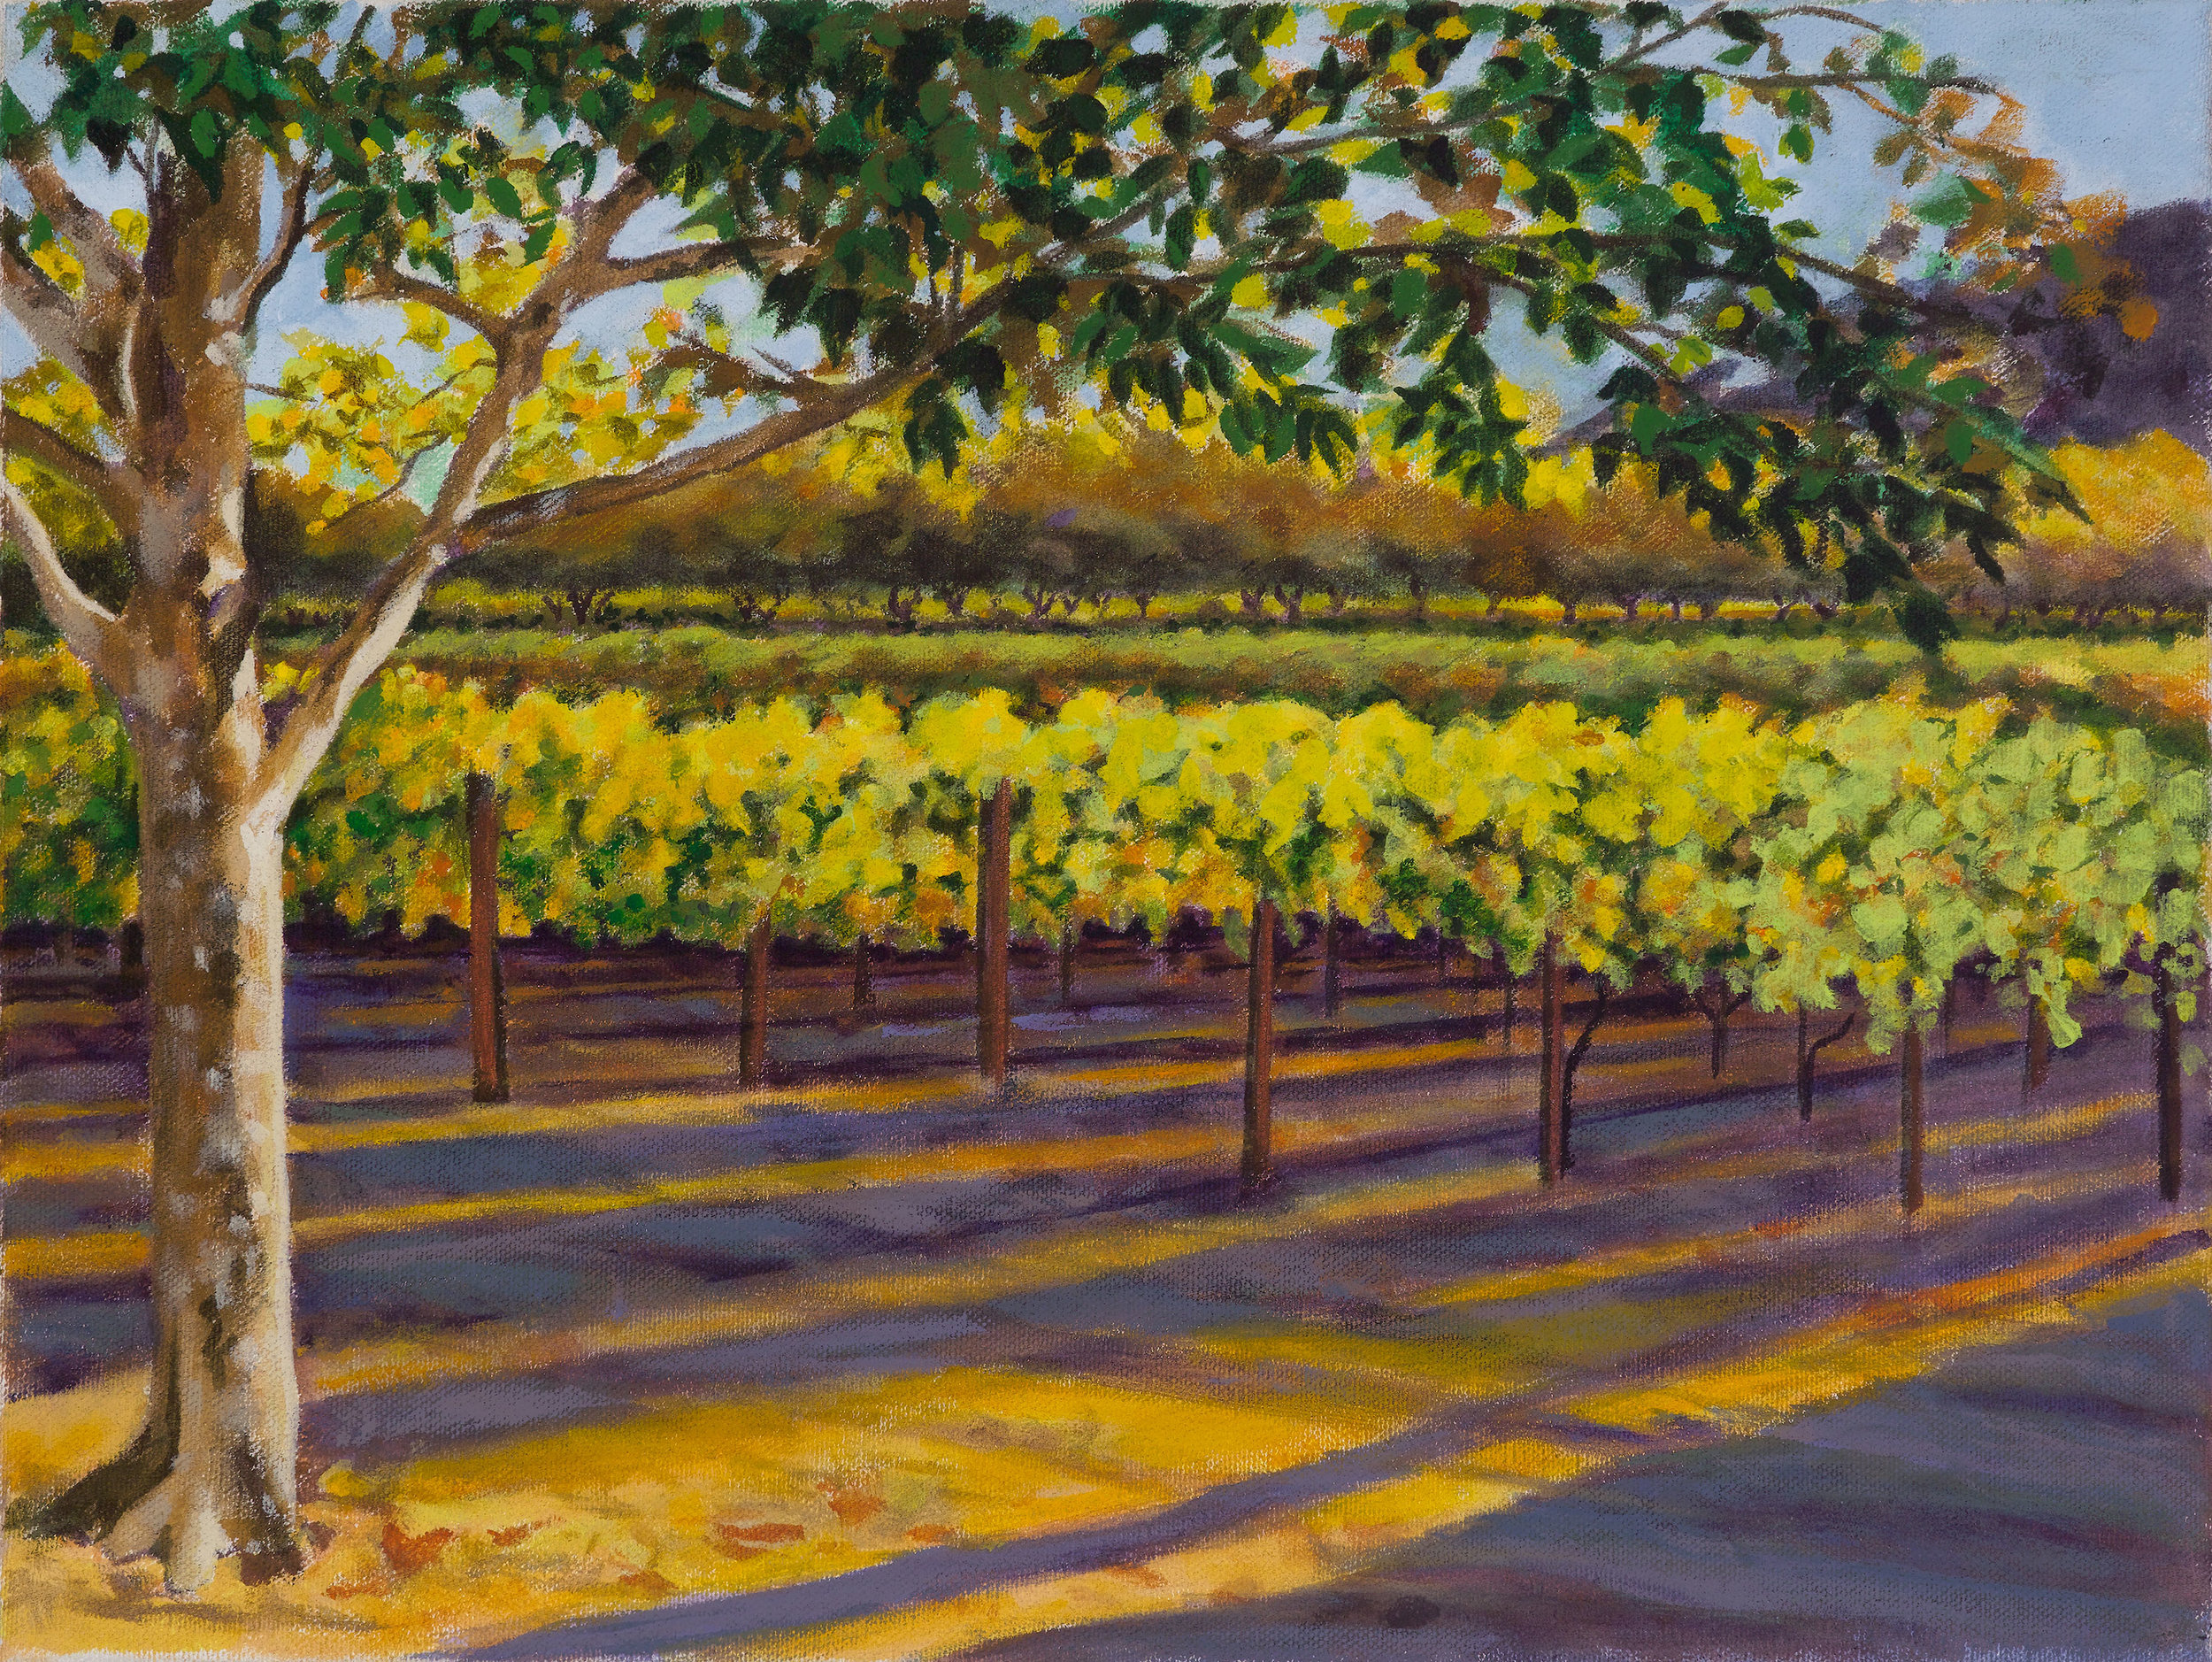 Napa-Valley-Vineyard-II.jpg